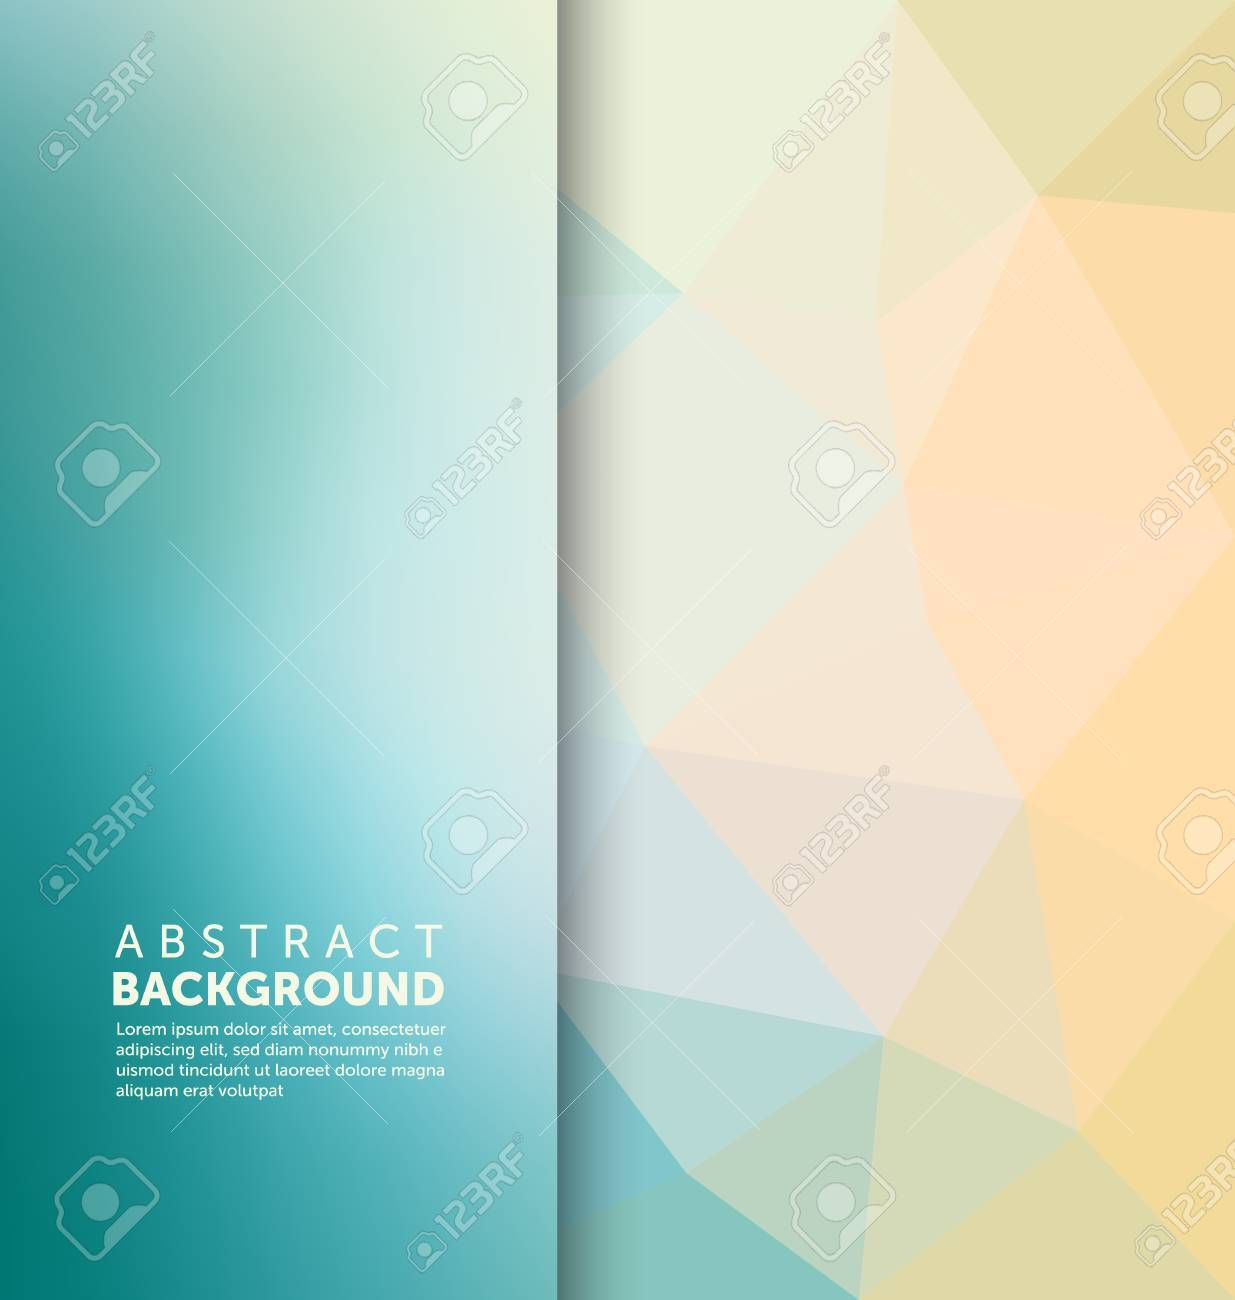 Abstract Background - Triangle and blurred banner design - 45168472